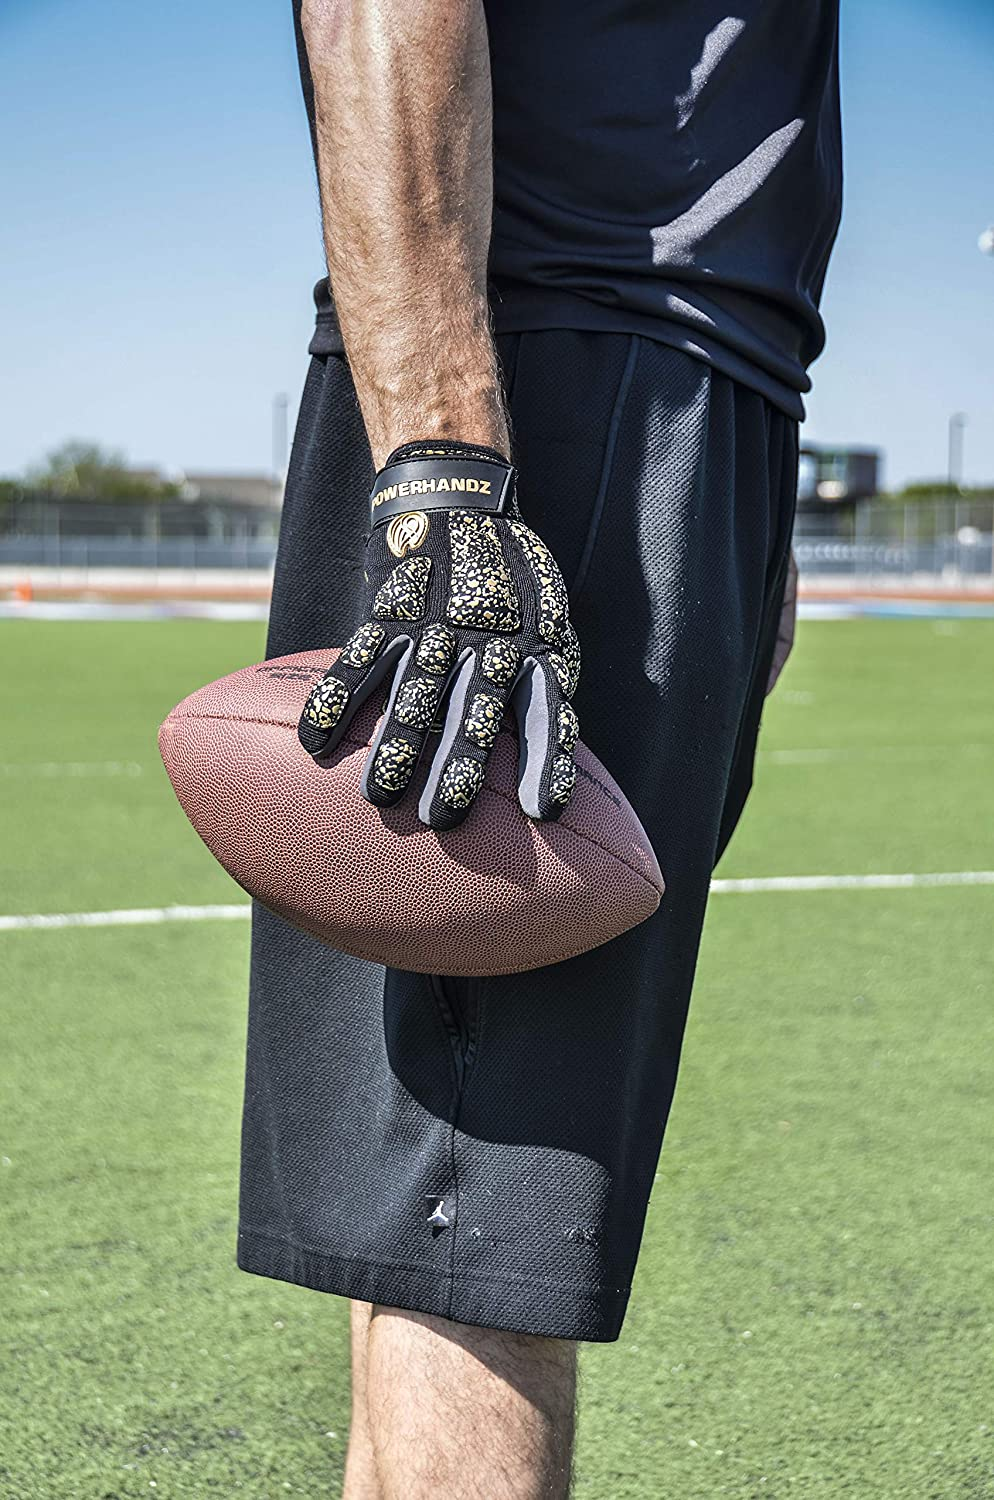 POWERHANDZ Weighted Anti-Grip Football Gloves for Strength and Resistance Training Improve Dexterity and Arm Strength